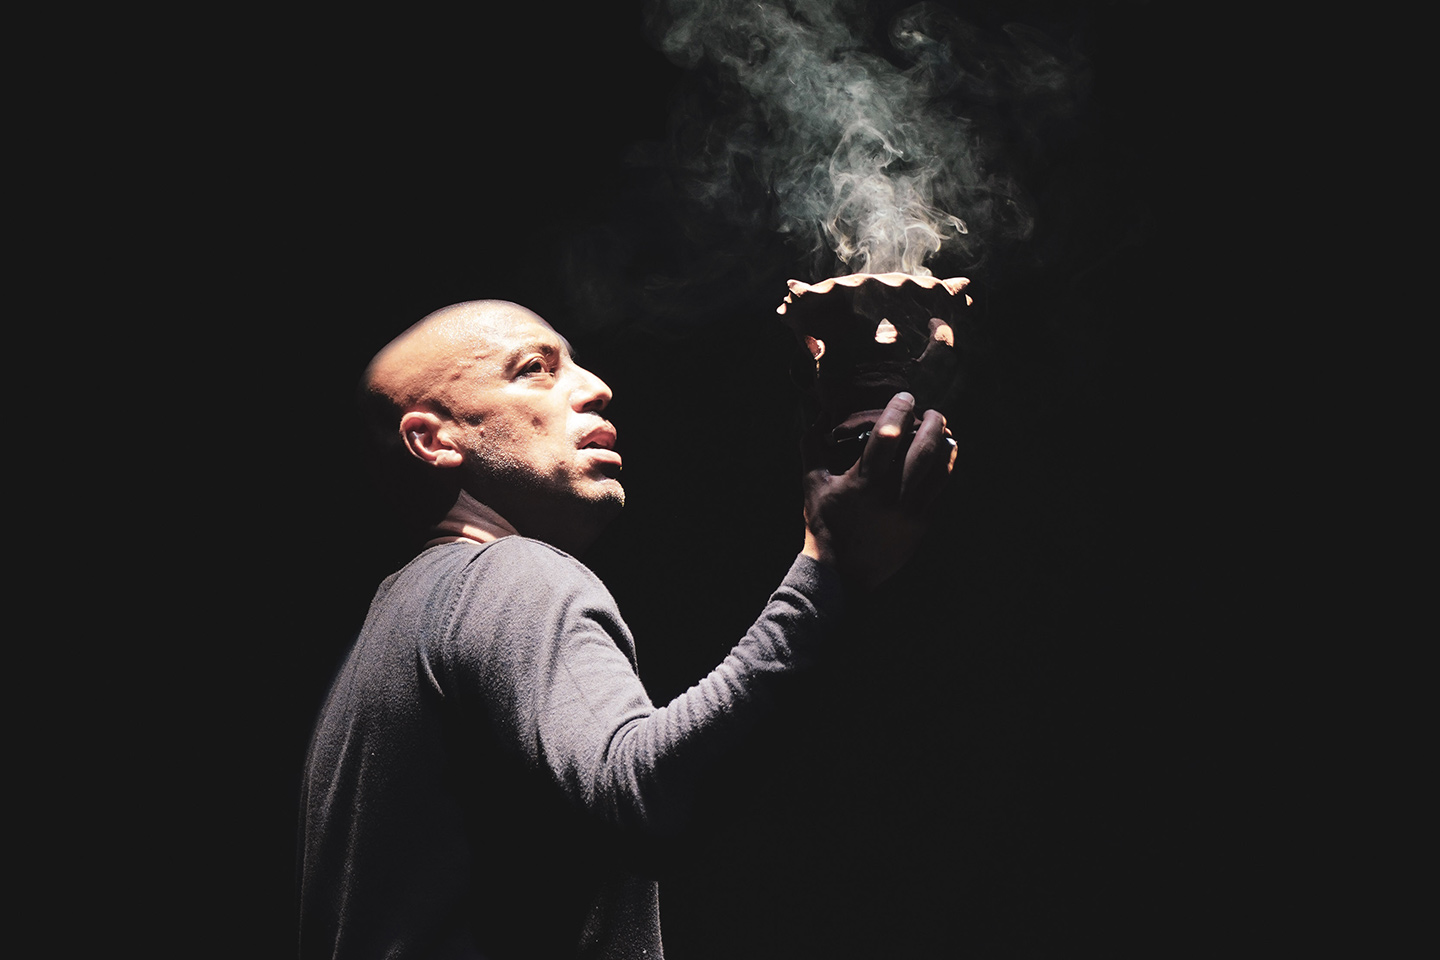 Man (Hamid Ben Mahi) holding a clay lantern with smoke arising from it